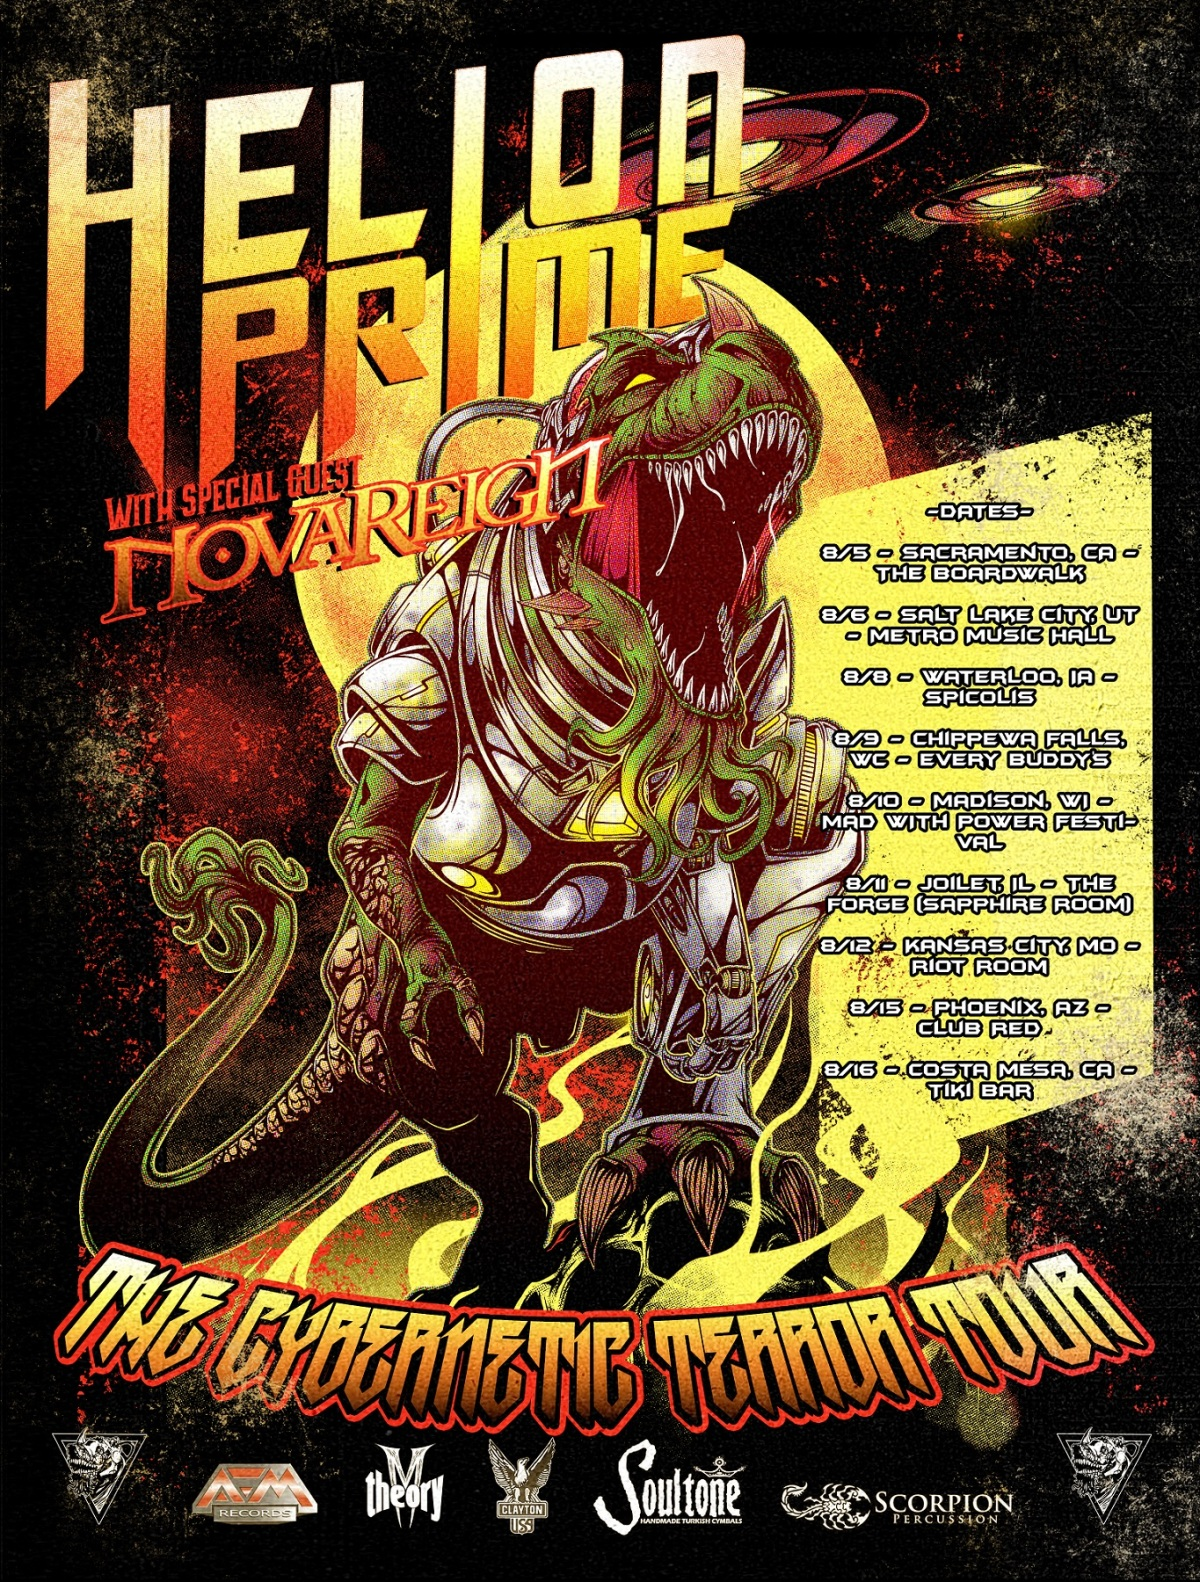 Sci-Fi Power Metal HELION PRIME Announces 'The Cybernetic Terror Tour'